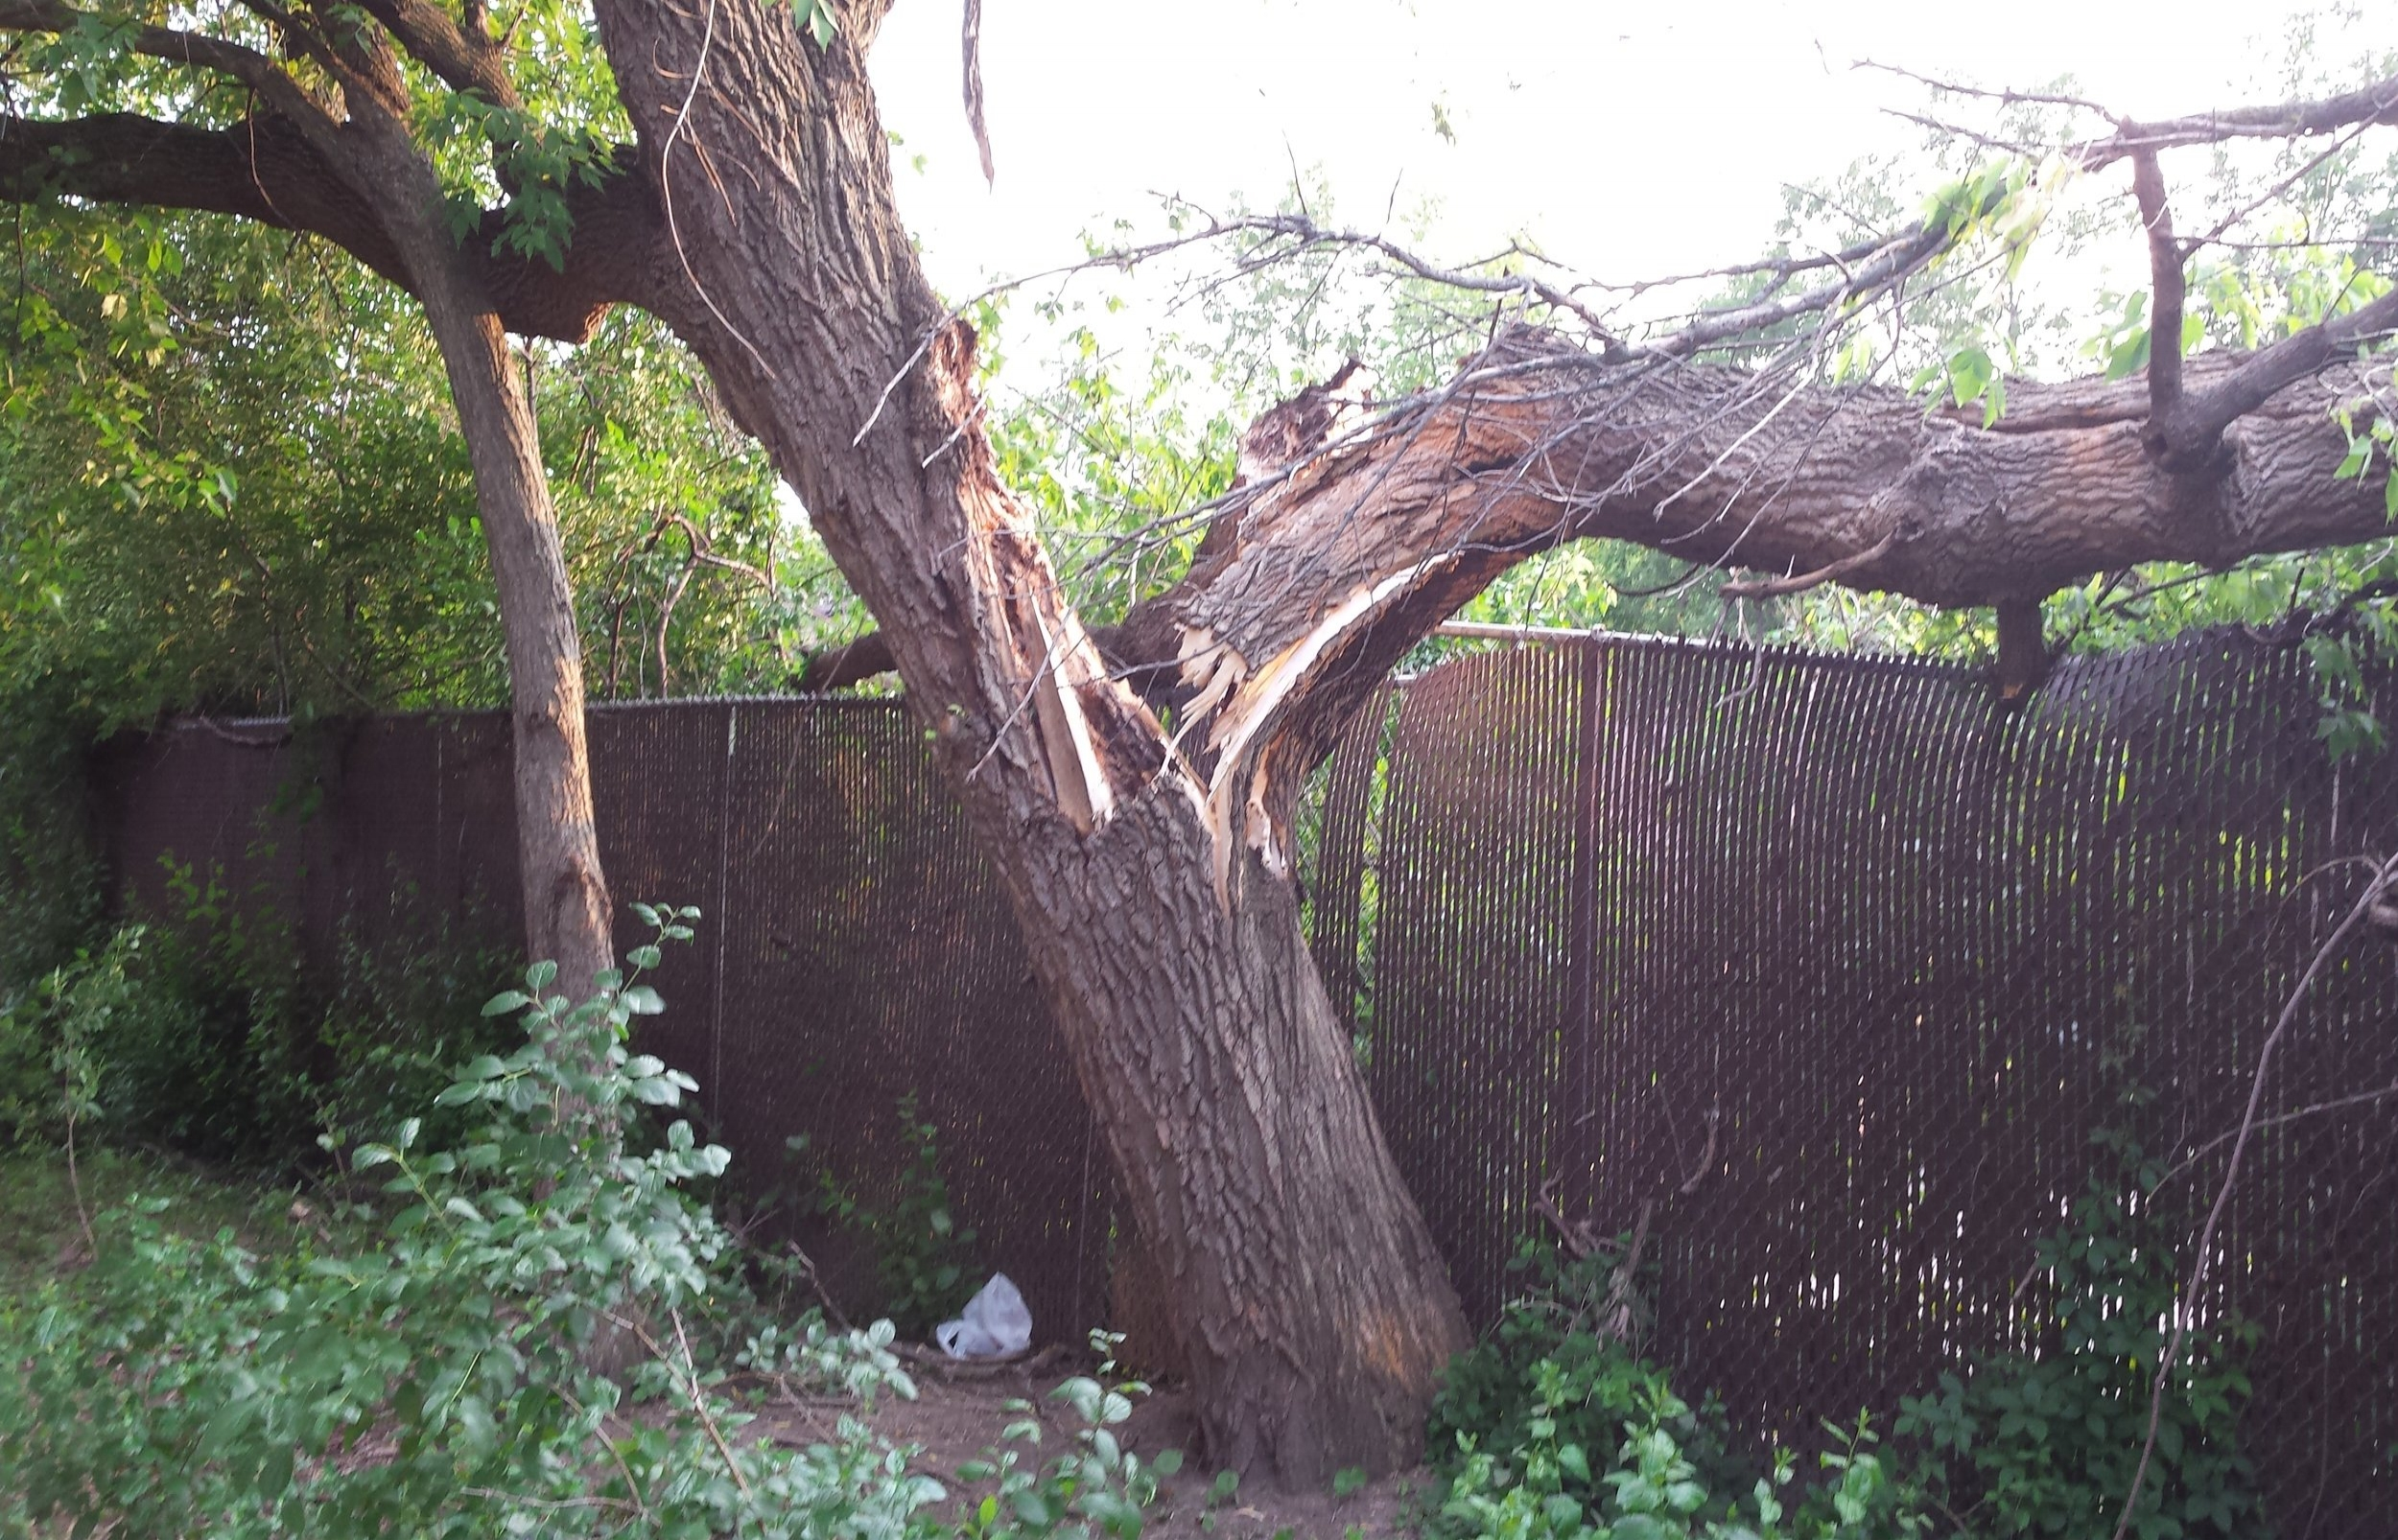 EMERGENCY STORM DAMAGE - When severe storms strike they can cause major damage to property and homes. Dorshak Family Tree Service has complete 24 hour Emergency Storm Damage services to help restore your property after a storm. Click here for more about Emergency Storm Damage Services.